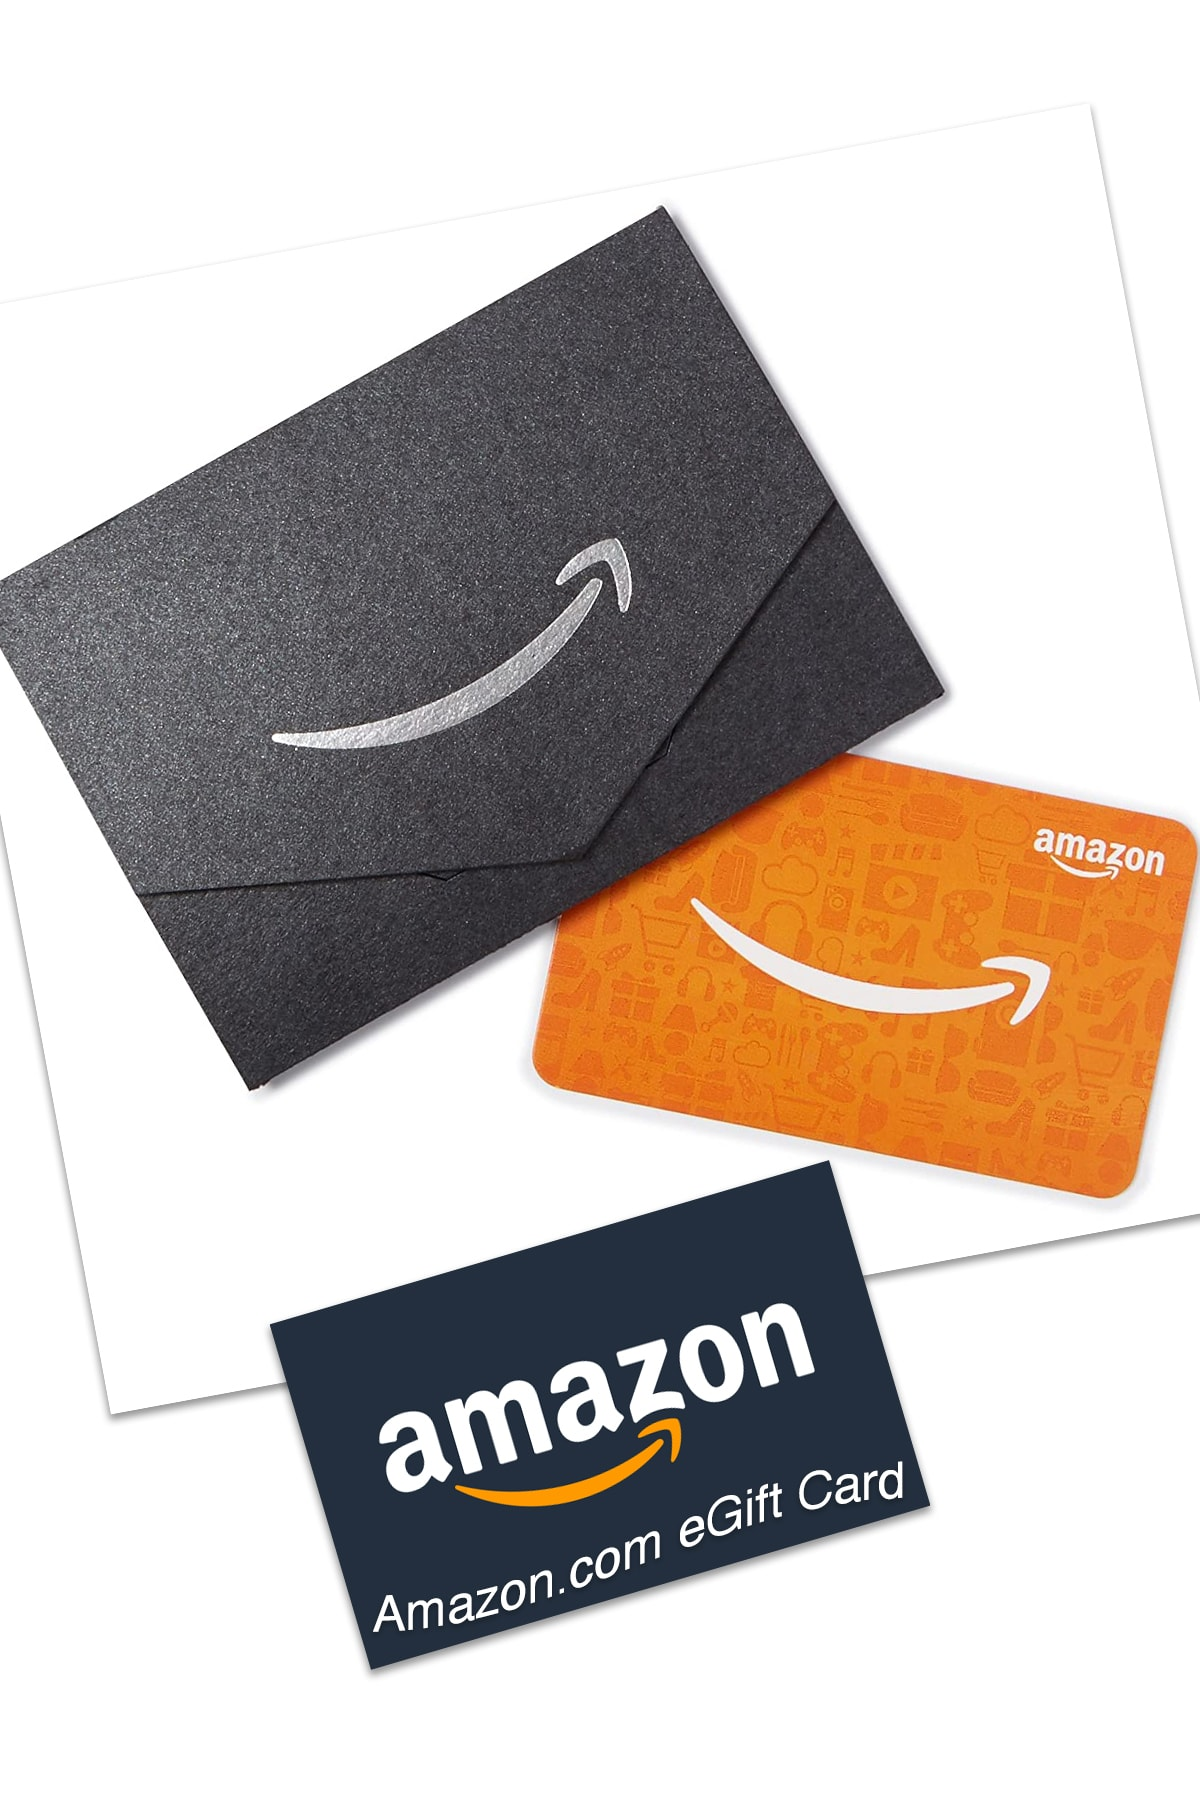 Amazon Gift Card Giveaway from Olgainthekitchen.com